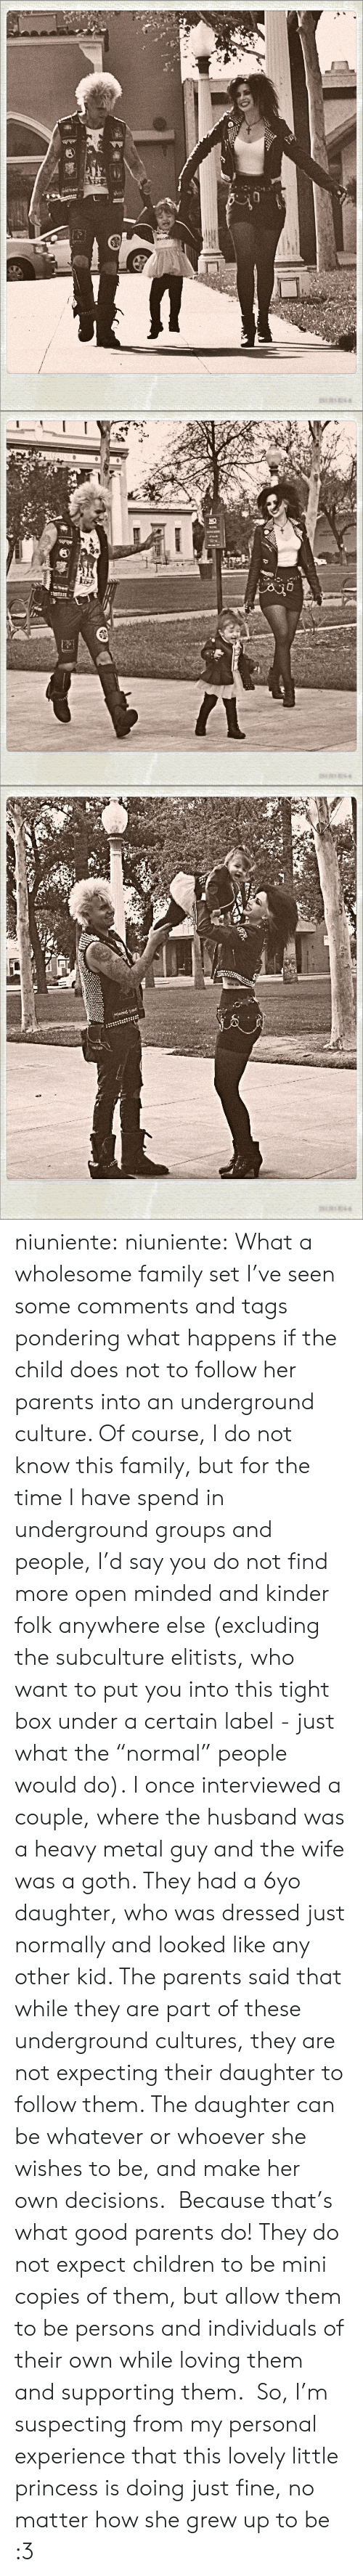 "Children, Family, and Parents: asANE   NO niuniente:  niuniente: What a wholesome family set I've seen some comments and tags pondering what happens if the child does not to follow her parents into an underground culture. Of course, I do not know this family, but for the time I have spend in underground groups and people, I'd say you do not find more open minded and kinder folk anywhere else (excluding the subculture elitists, who want to put you into this tight box under a certain label - just what the ""normal"" people would do). I once interviewed a couple, where the husband was a heavy metal guy and the wife was a goth. They had a 6yo daughter, who was dressed just normally and looked like any other kid. The parents said that while they are part of these underground cultures, they are not expecting their daughter to follow them. The daughter can be whatever or whoever she wishes to be, and make her own decisions.  Because that's what good parents do! They do not expect children to be mini copies of them, but allow them to be persons and individuals of their own while loving them and supporting them.  So, I'm suspecting from my personal experience that this lovely little princess is doing just fine, no matter how she grew up to be :3"